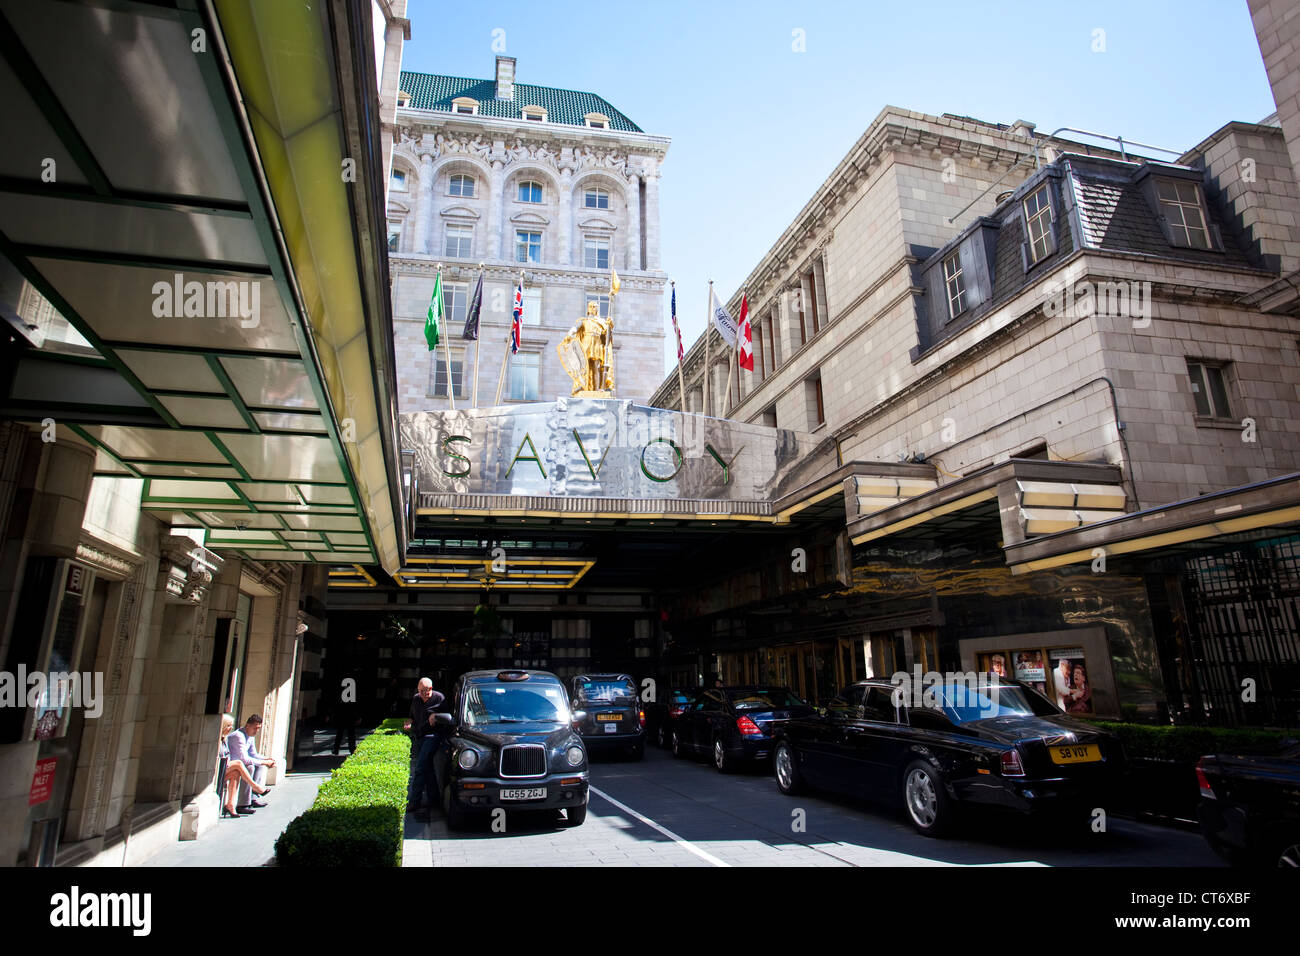 Savoy Hotel, Savoy Court, Strand, Central London, England, United Kingdom - Stock Image